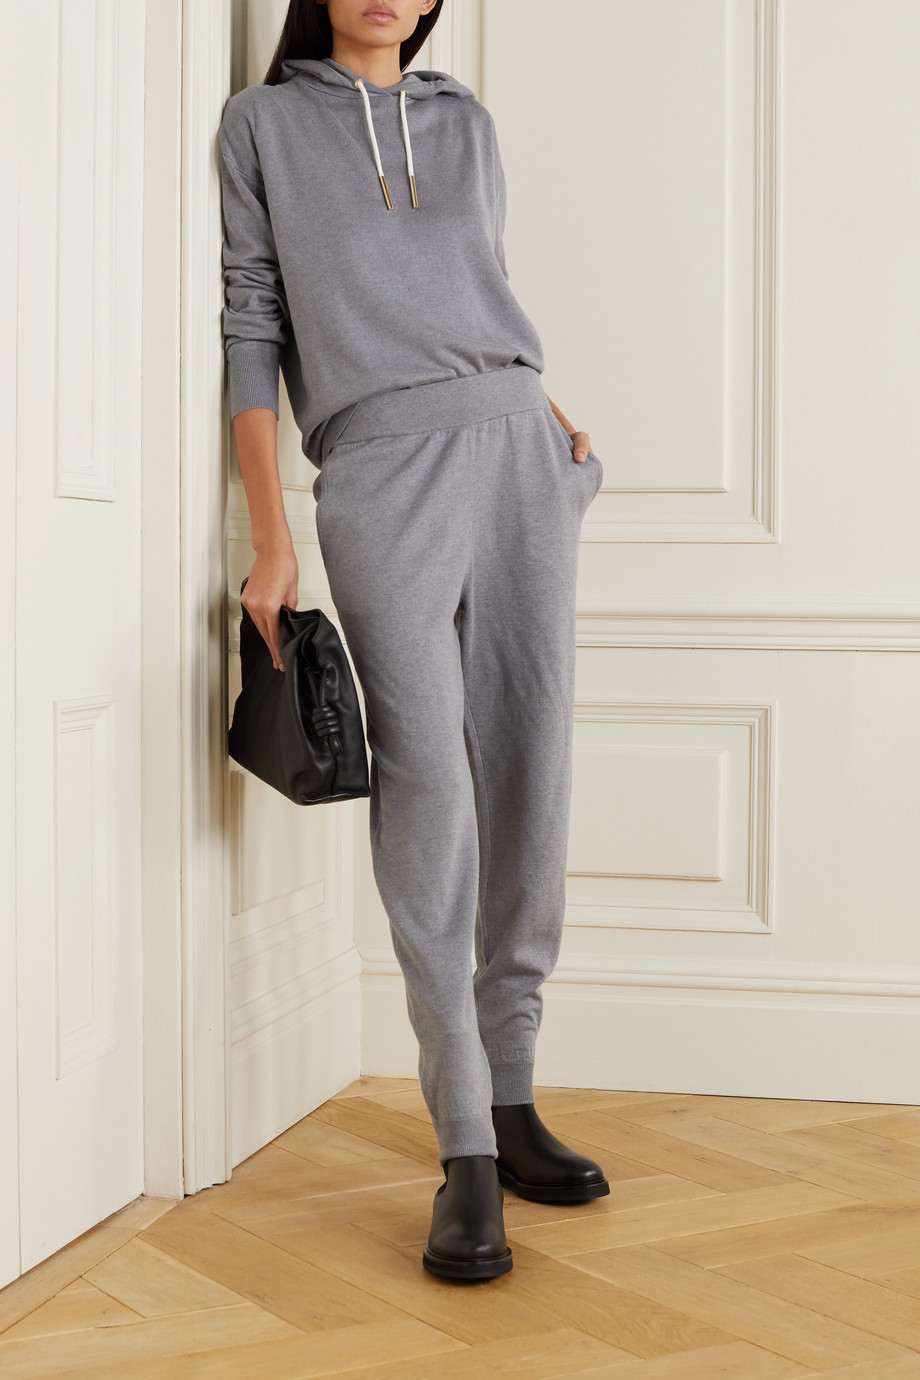 Olivia von Halle Gia London silk and cashmere-blend hoodie and track pants set